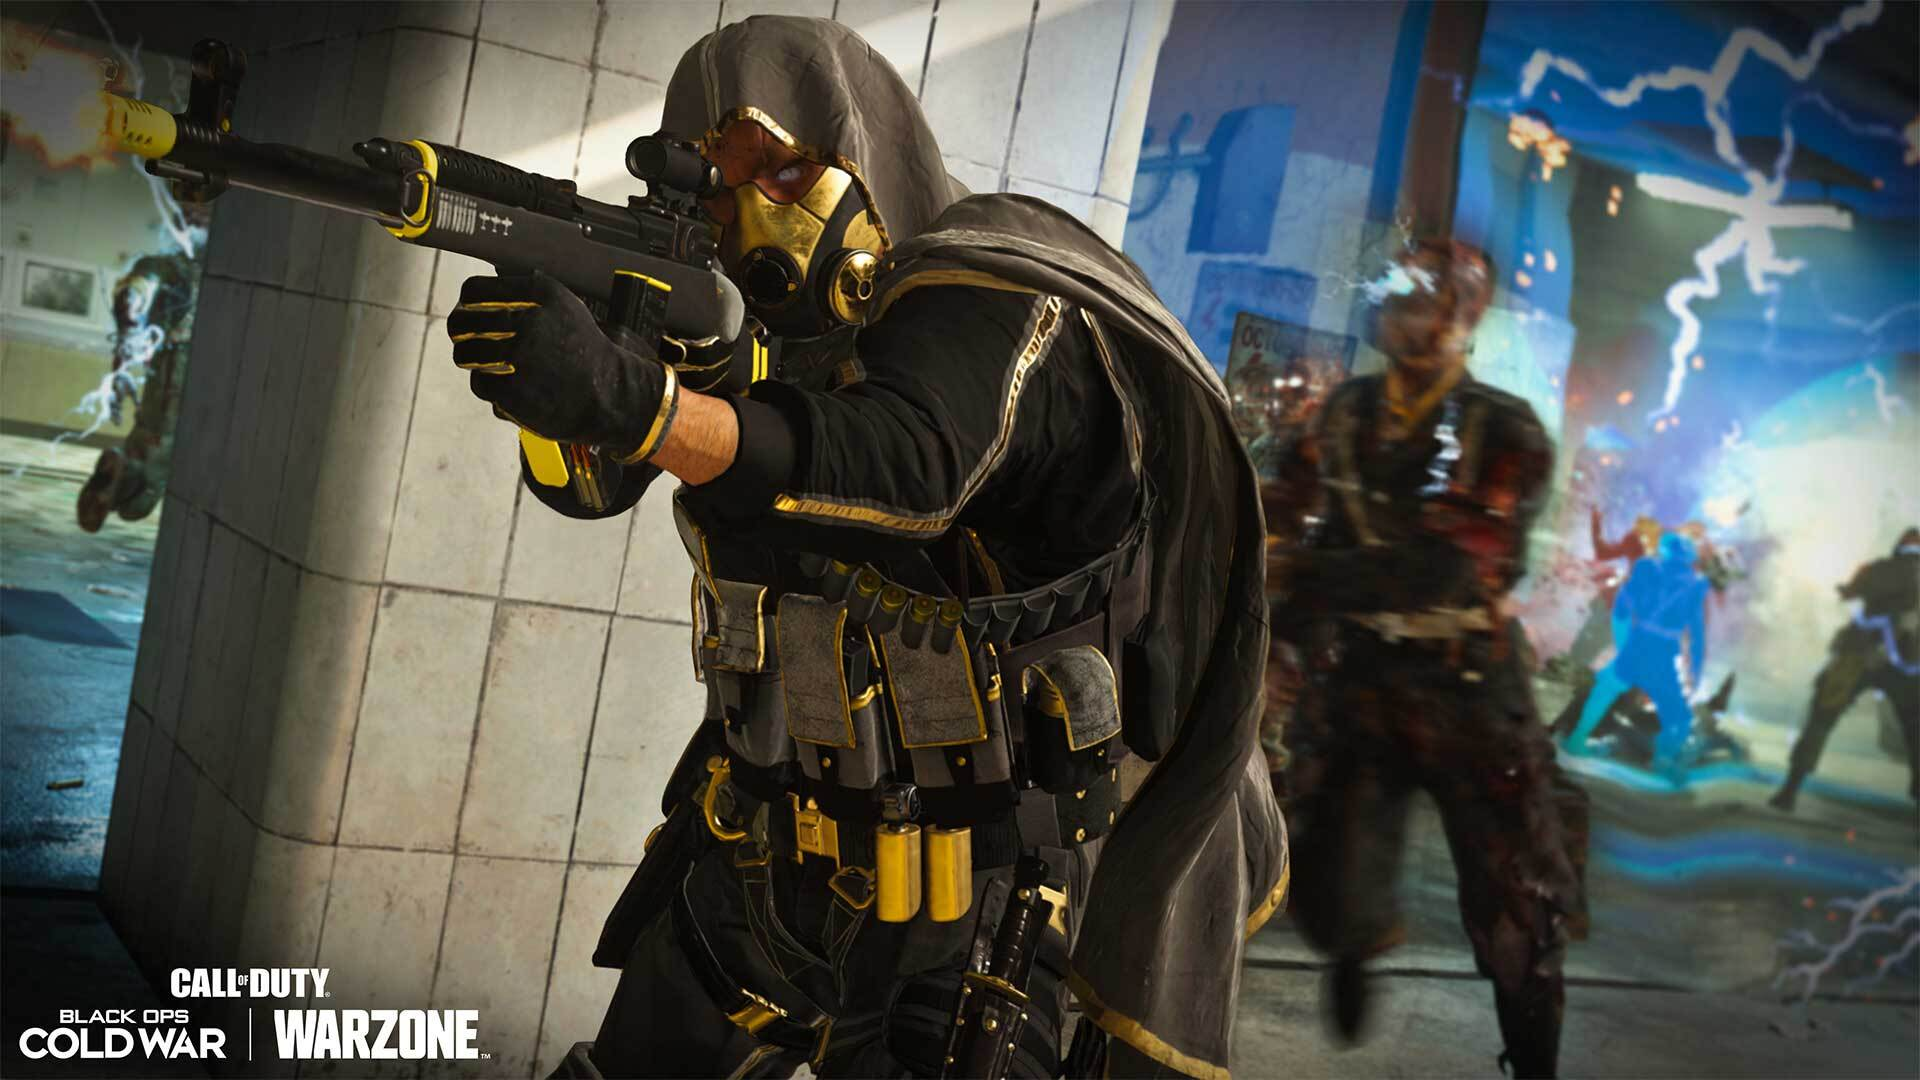 A Call of Duty: Warzone player fights zombies on Verdansk